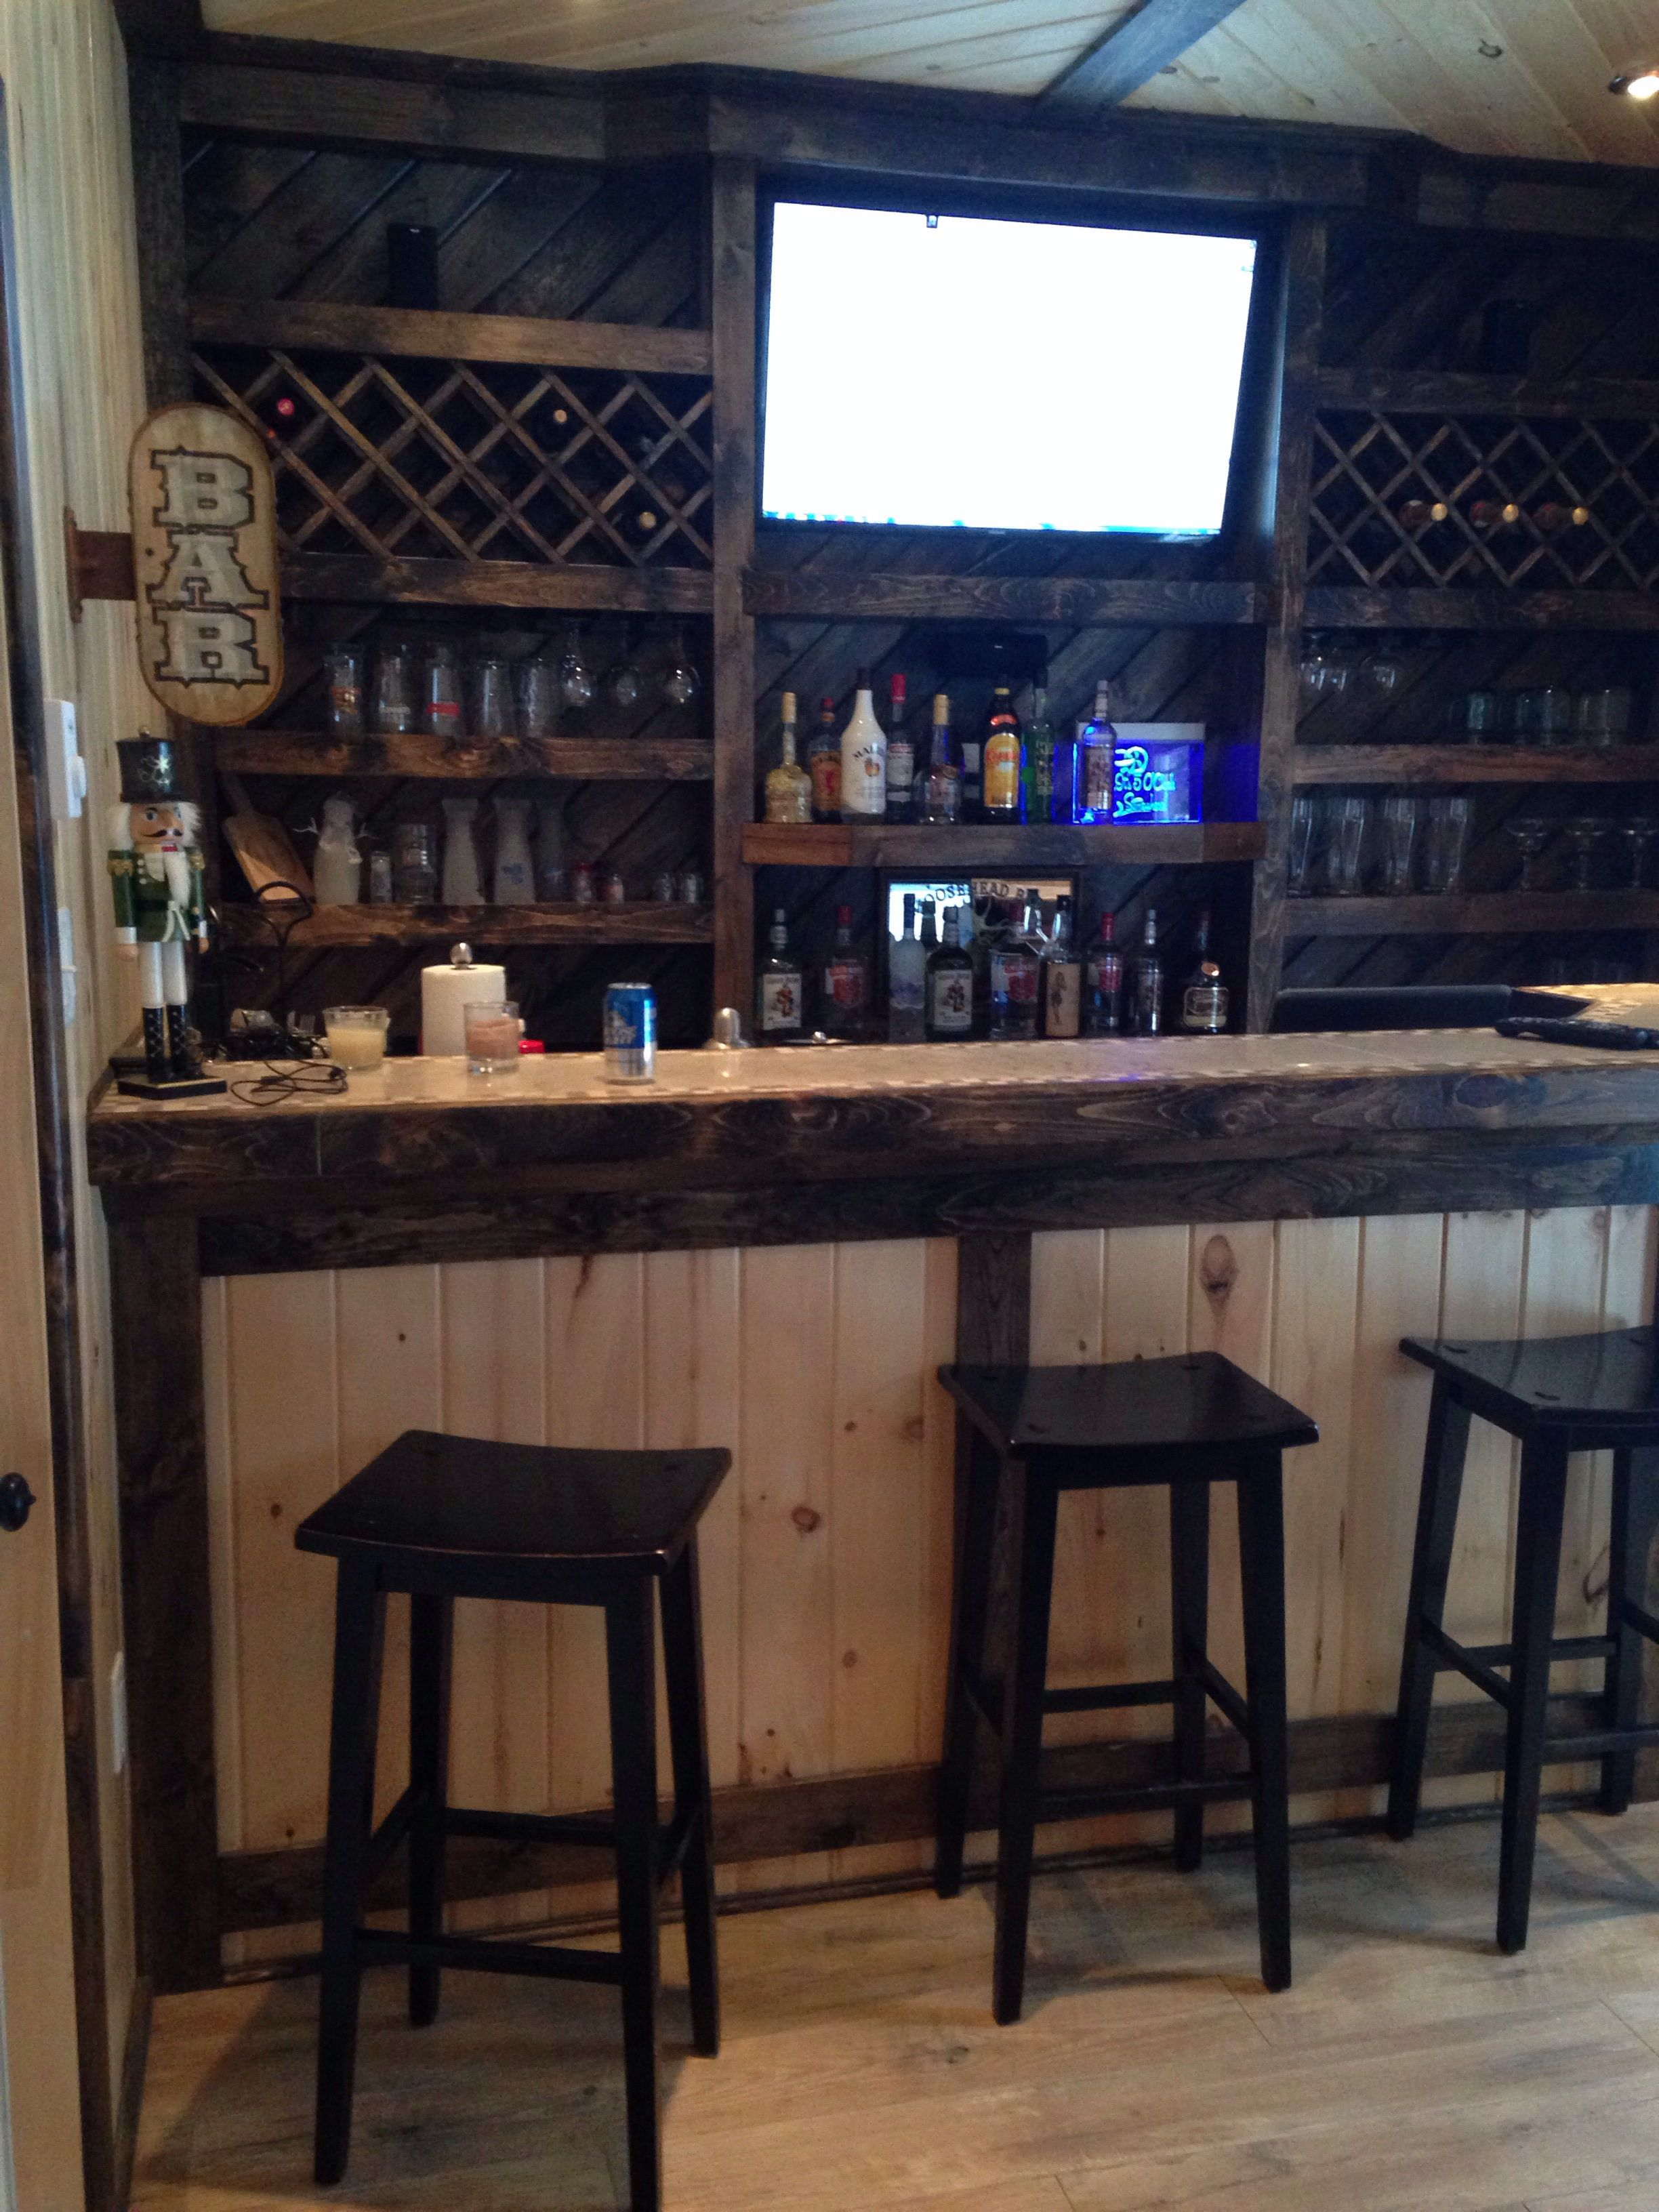 Man Cave Bar Counters : Garage bar idea for the hubby s man cave like this but